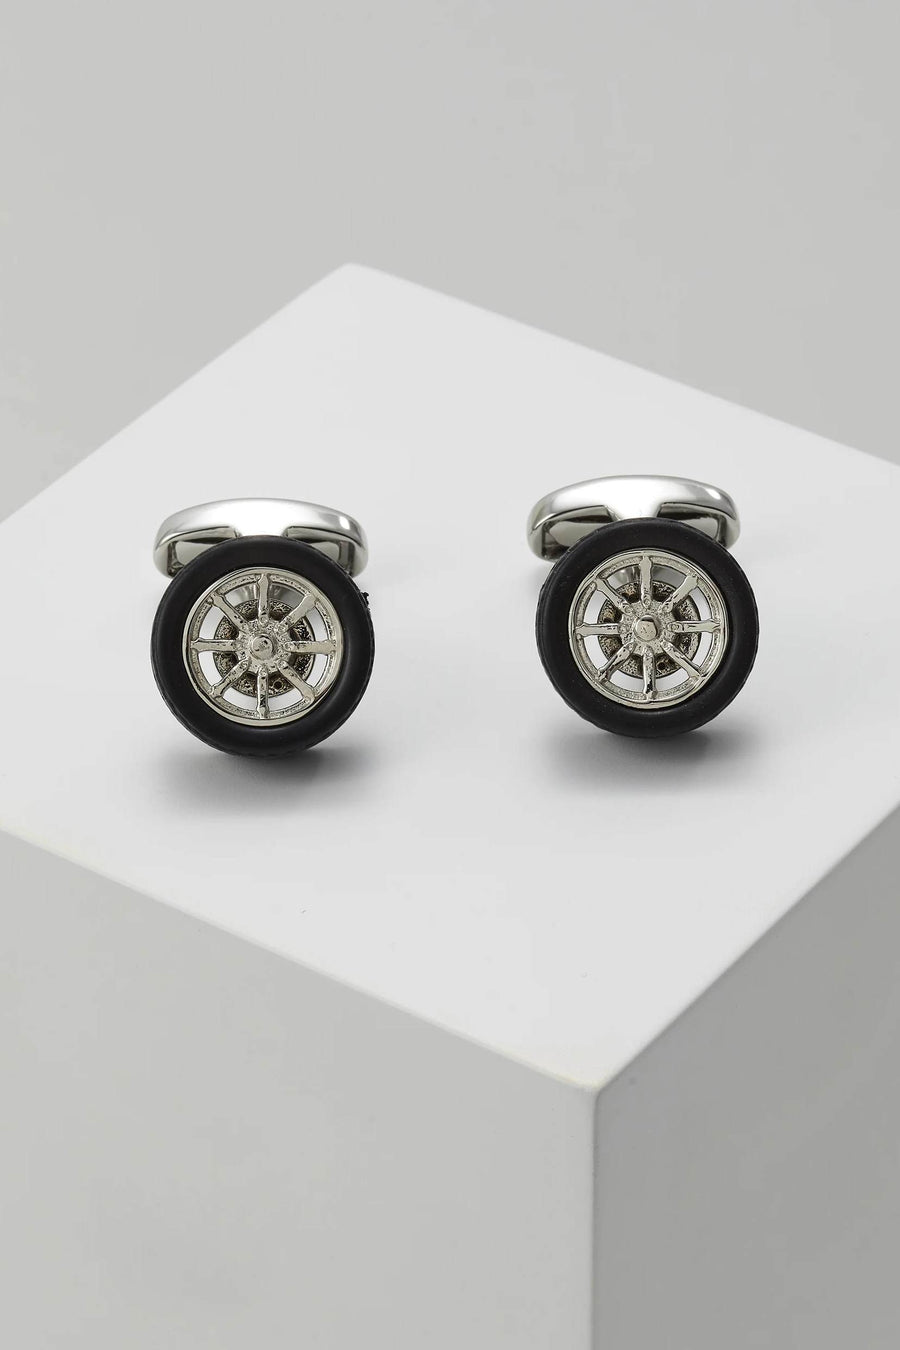 PAUL SMITH CUFFLINKS - CUFFEWHEEL